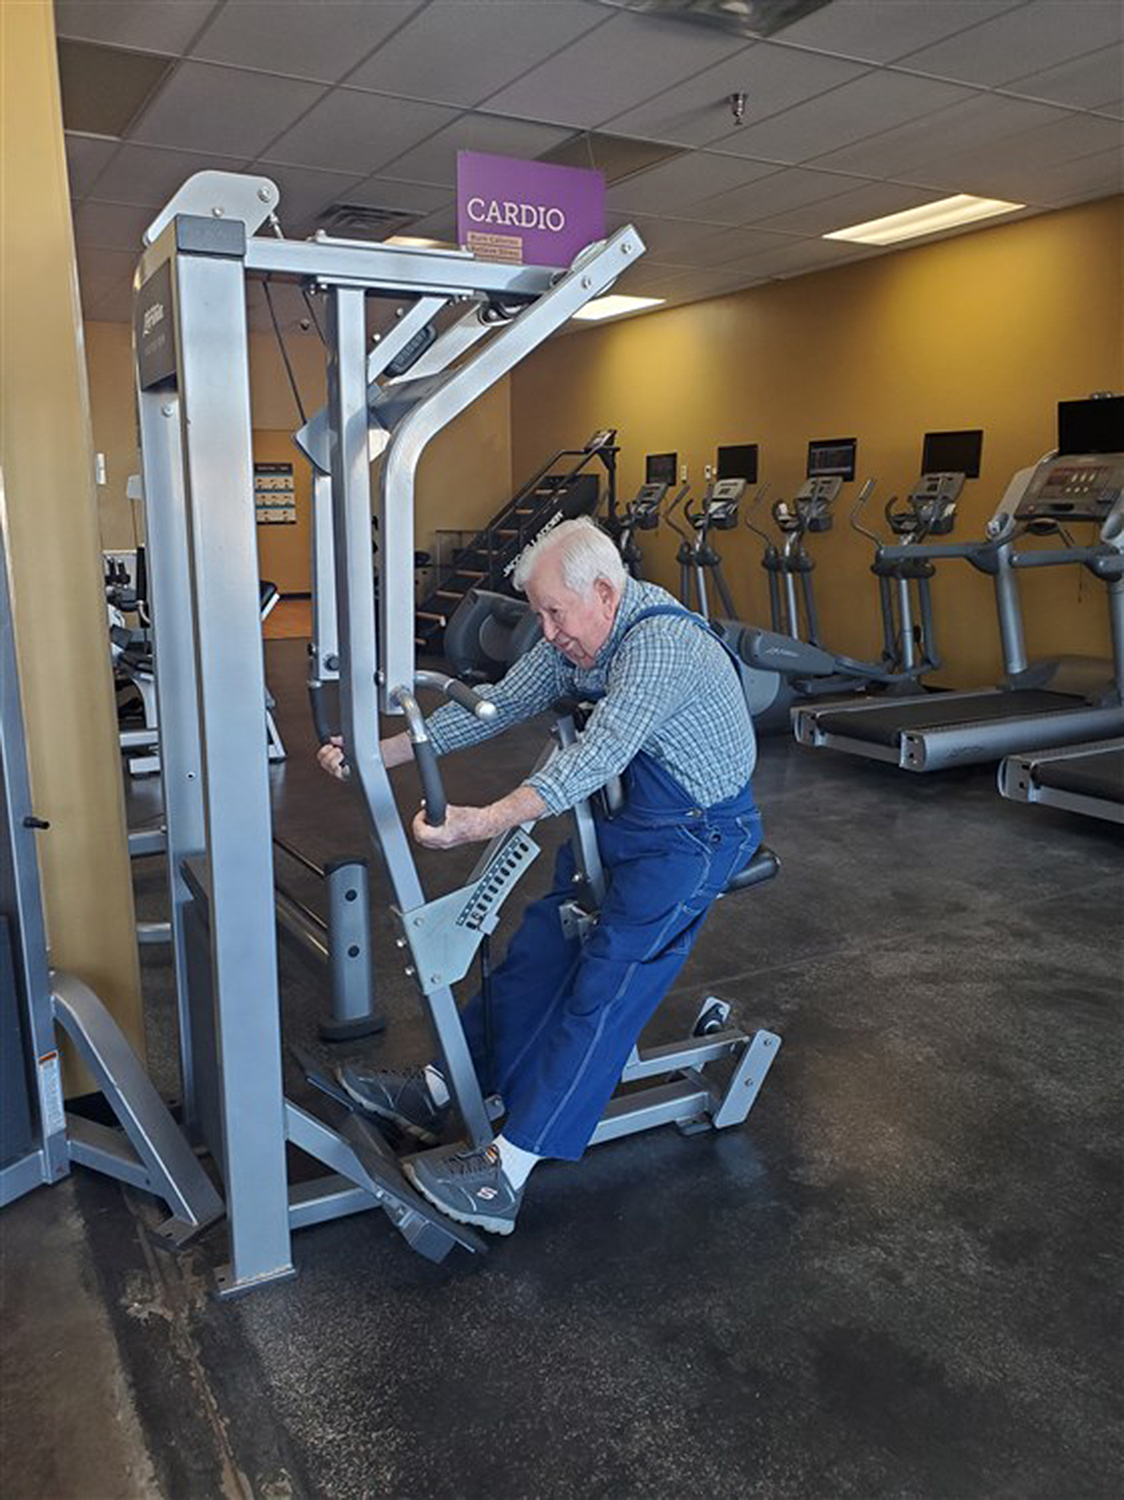 Lloyd Black elderly man works out in overalls